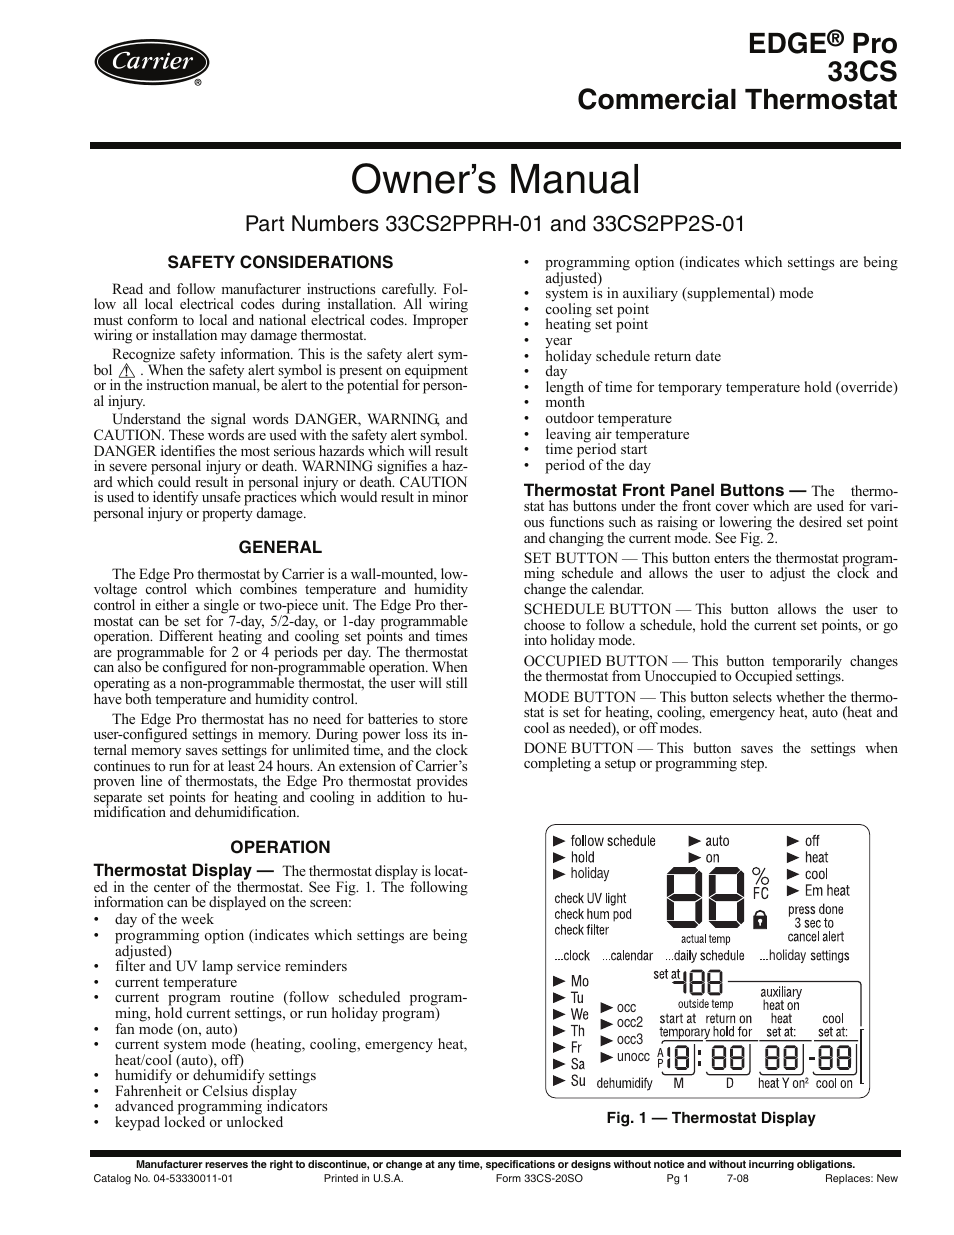 carrier edge pro 33cs2pprh 01 user manual 8 pages also for edge rh manualsdir com carrier manuals air conditioner carrier manuals downloads